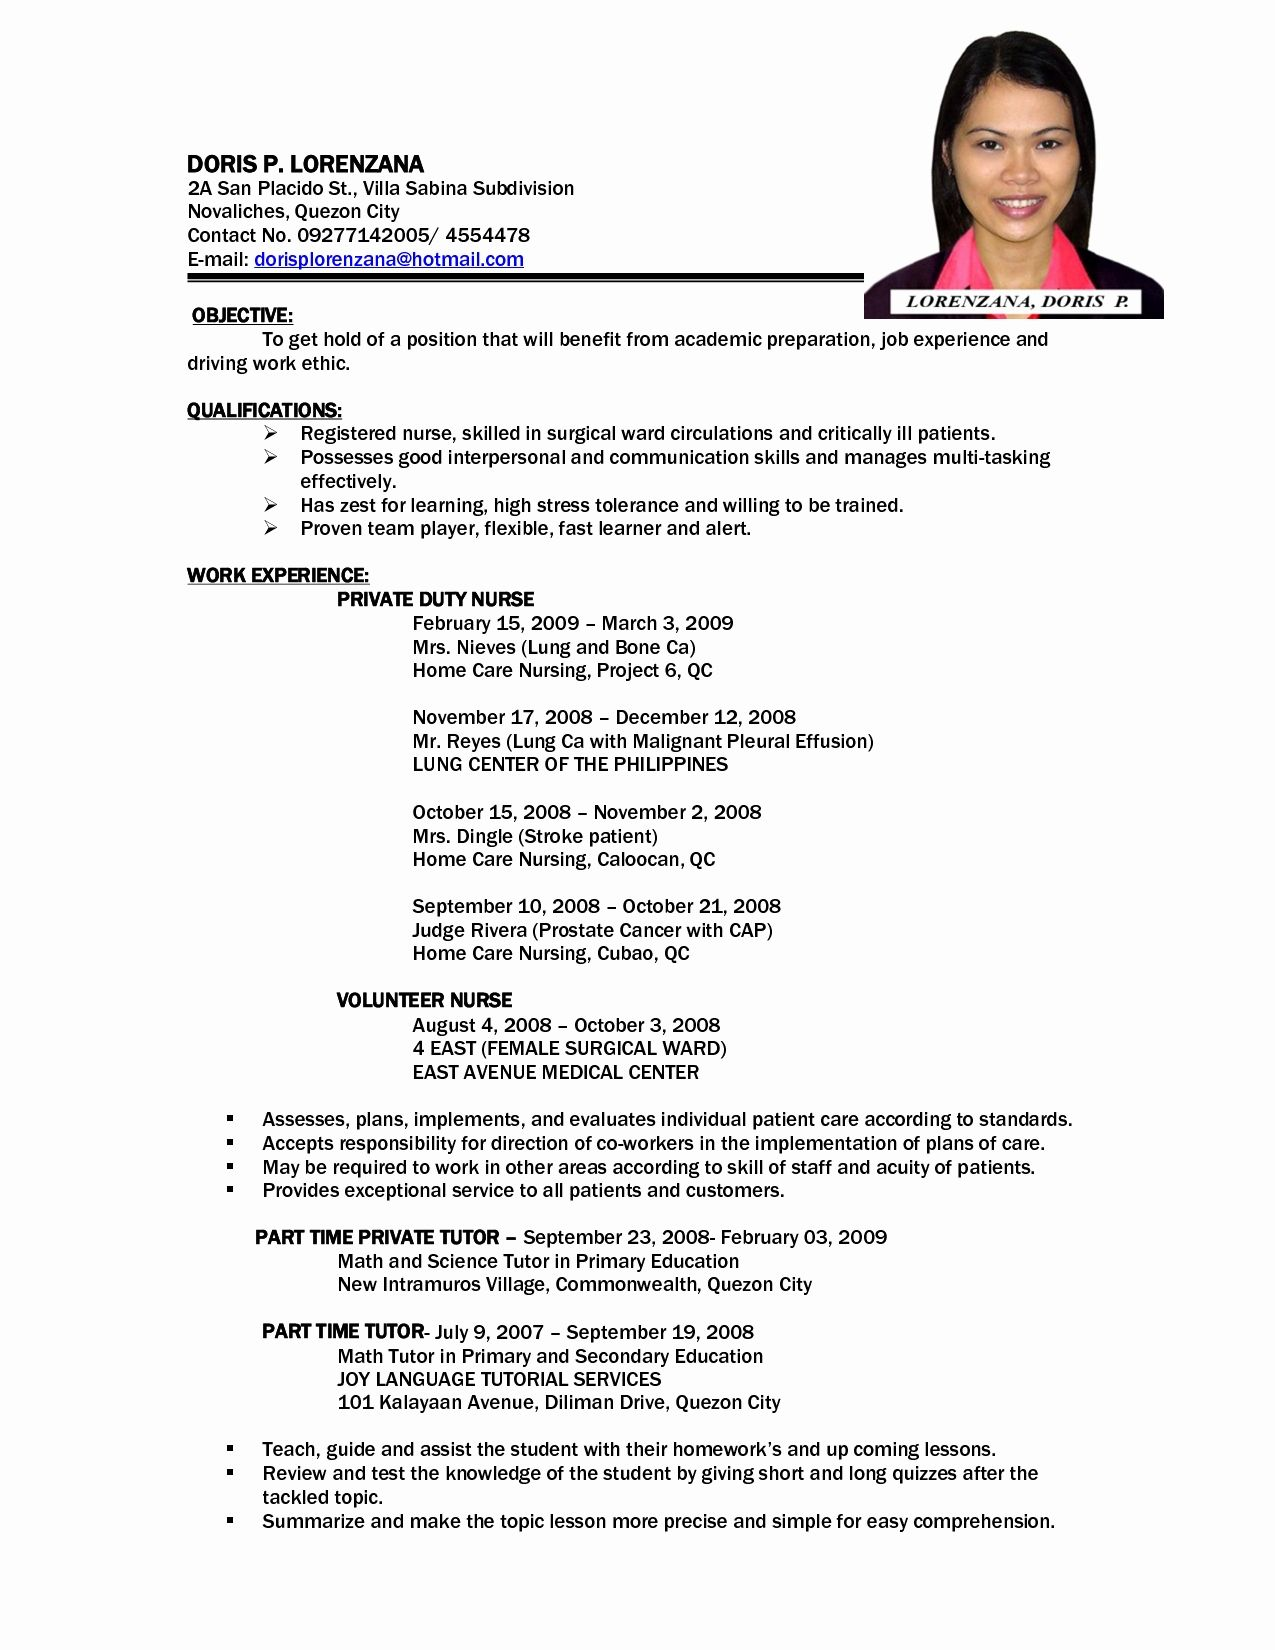 resume sample format for job application best of mesmerizing most recent resume format 2016 with